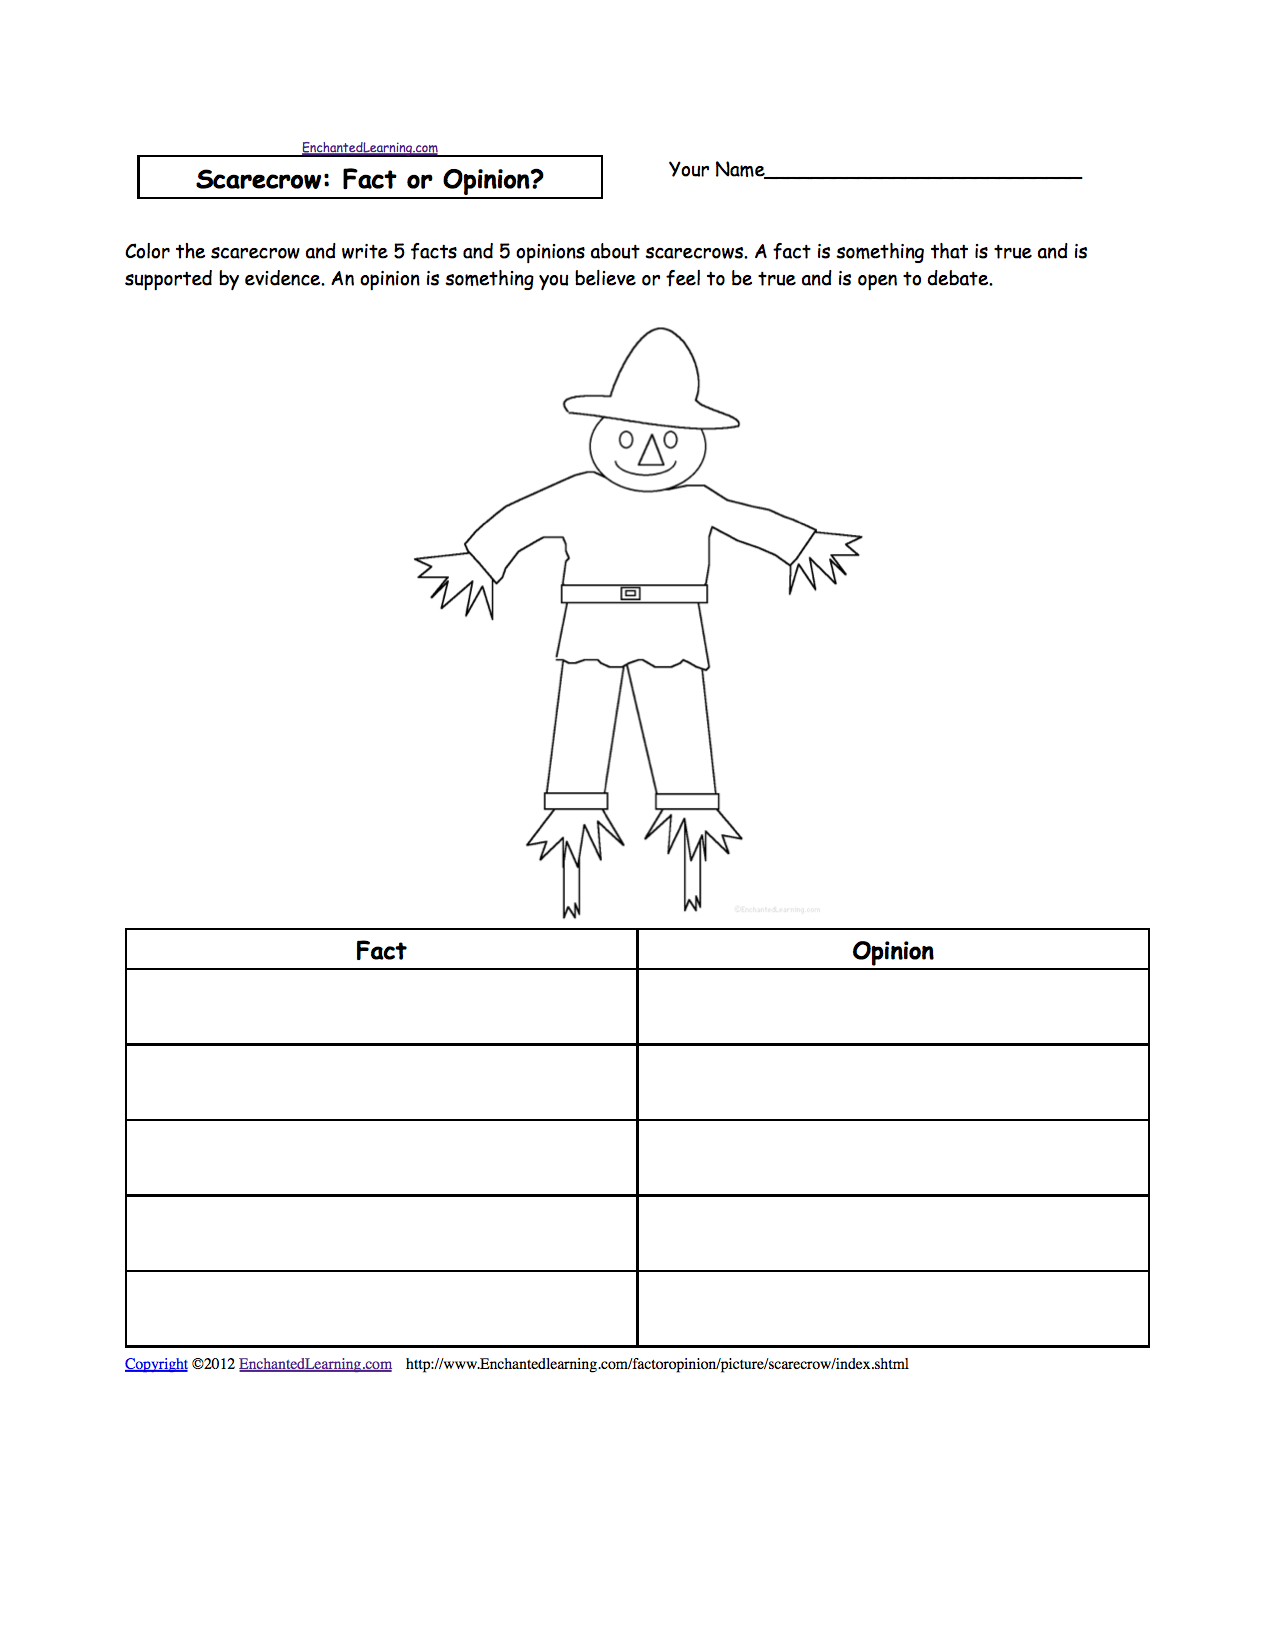 scarecrow activities at enchantedlearning com